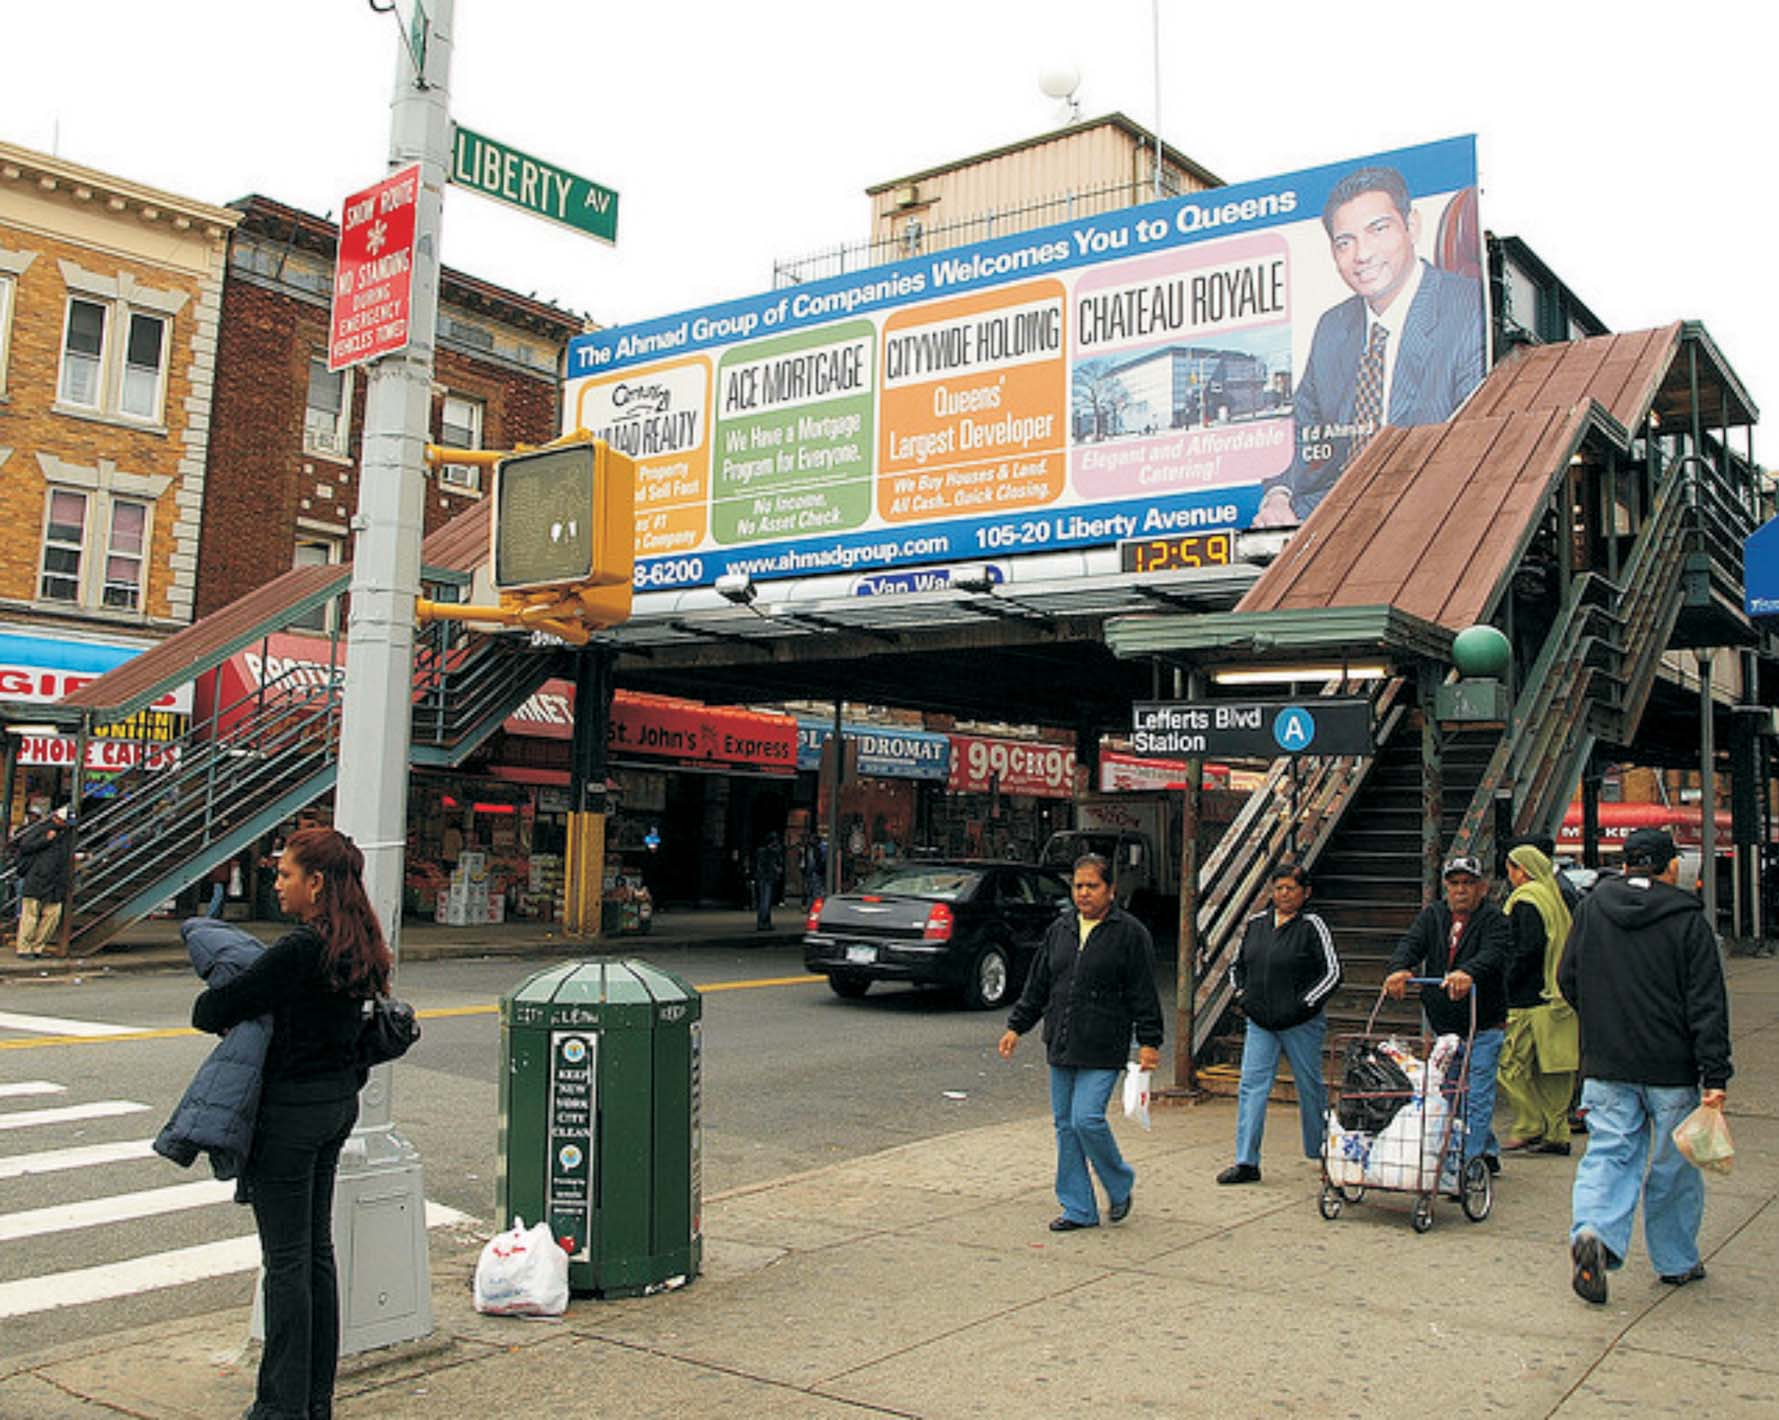 Lefferts-Boulevard-Subway-Station-Terminal-Queens-New-York-City